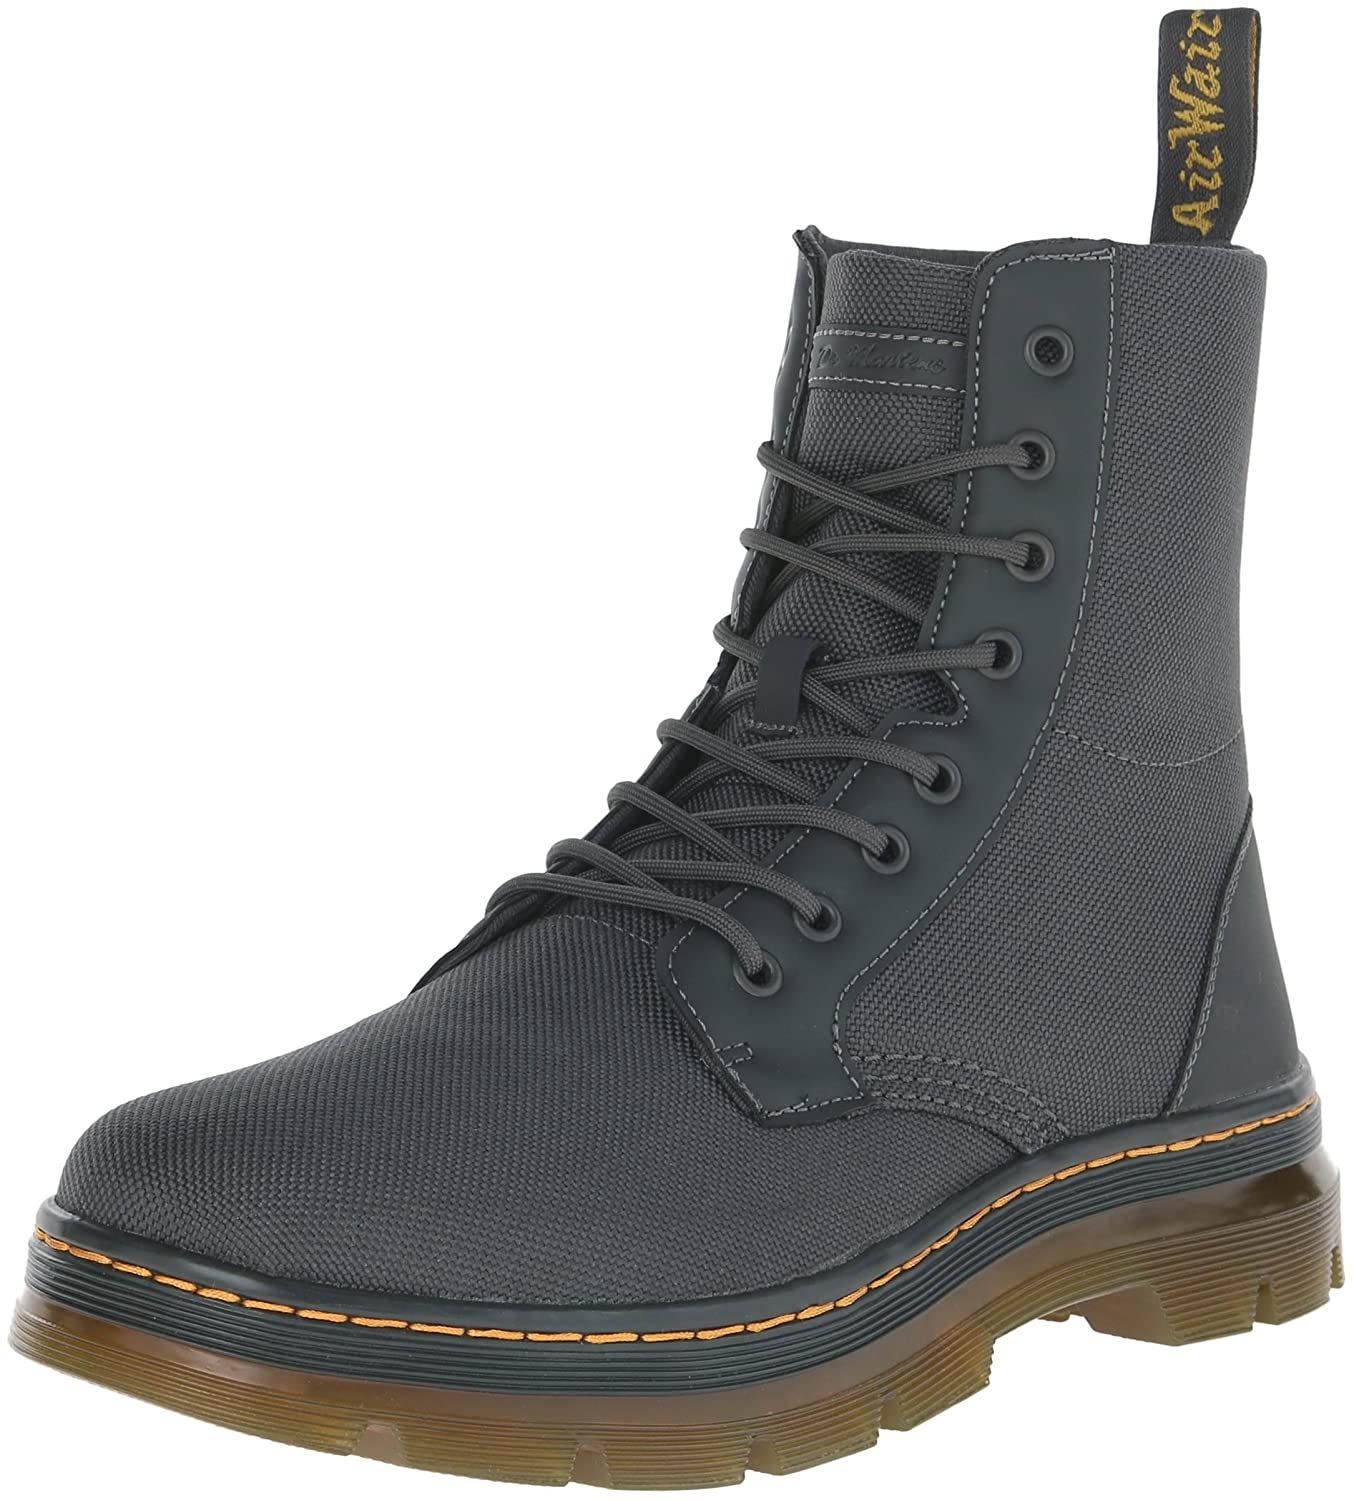 Super Cool Dr. Martens Men's Blue Nylon and Faux Leather Combat Boots - DeluxeAdultCostumes.com